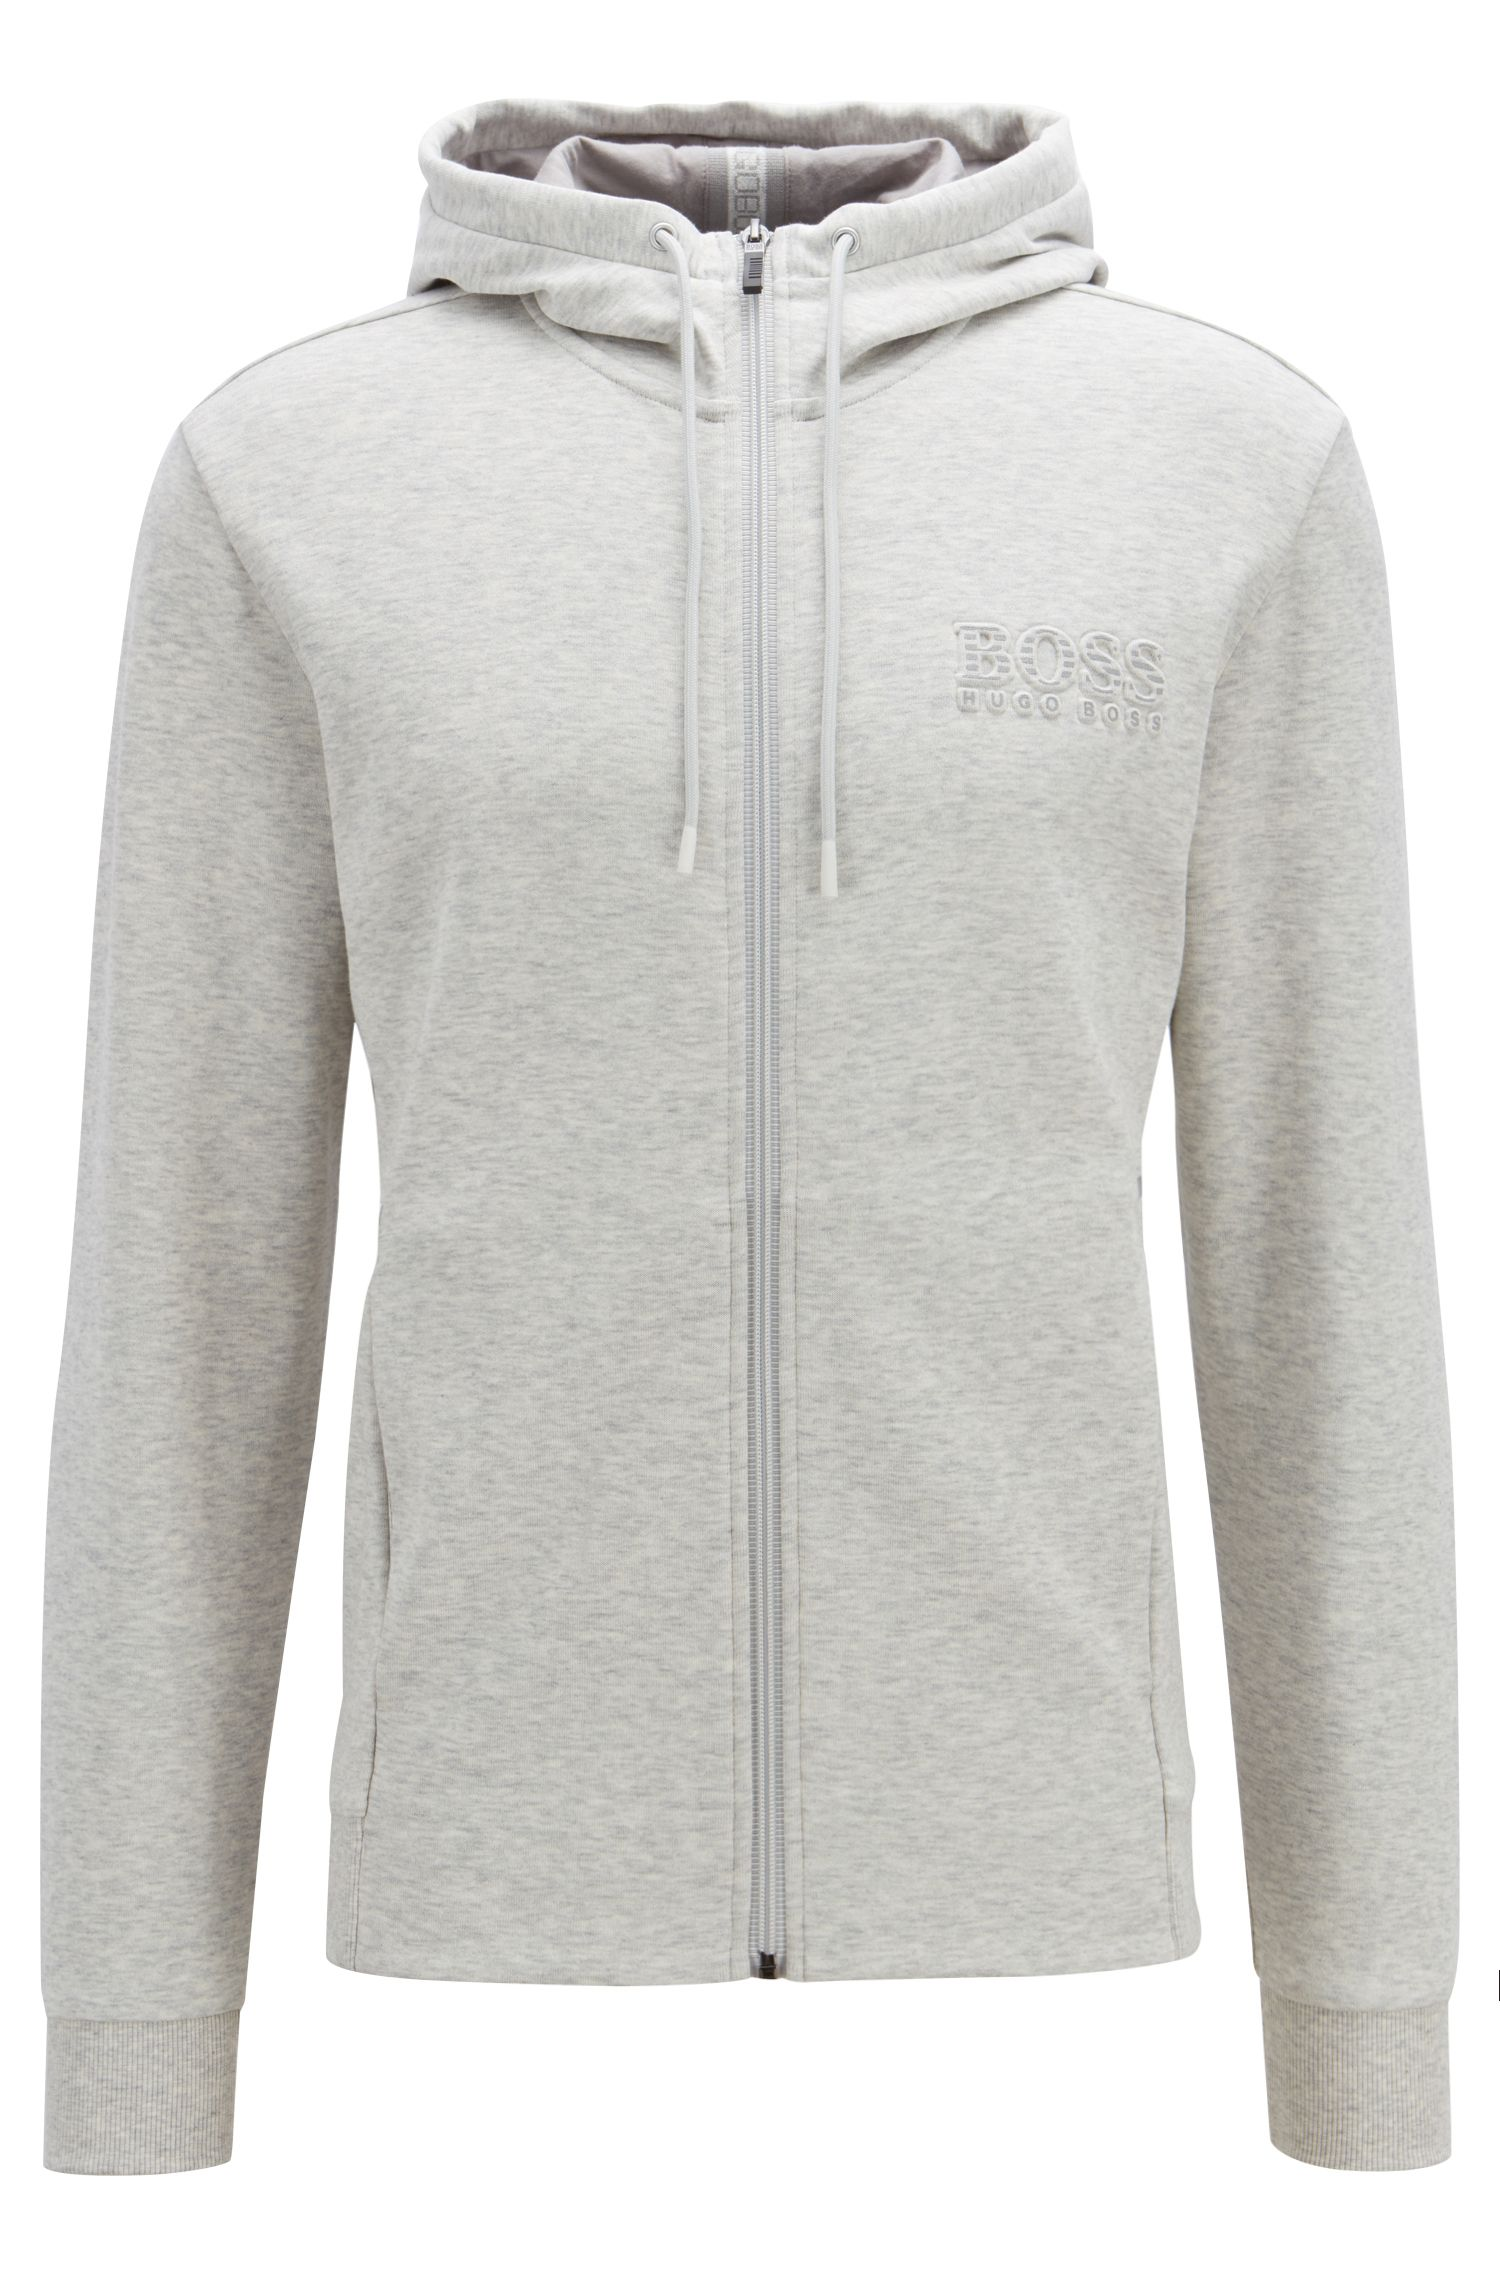 Hooded sweatshirt with logo and reflective detailing, Light Grey